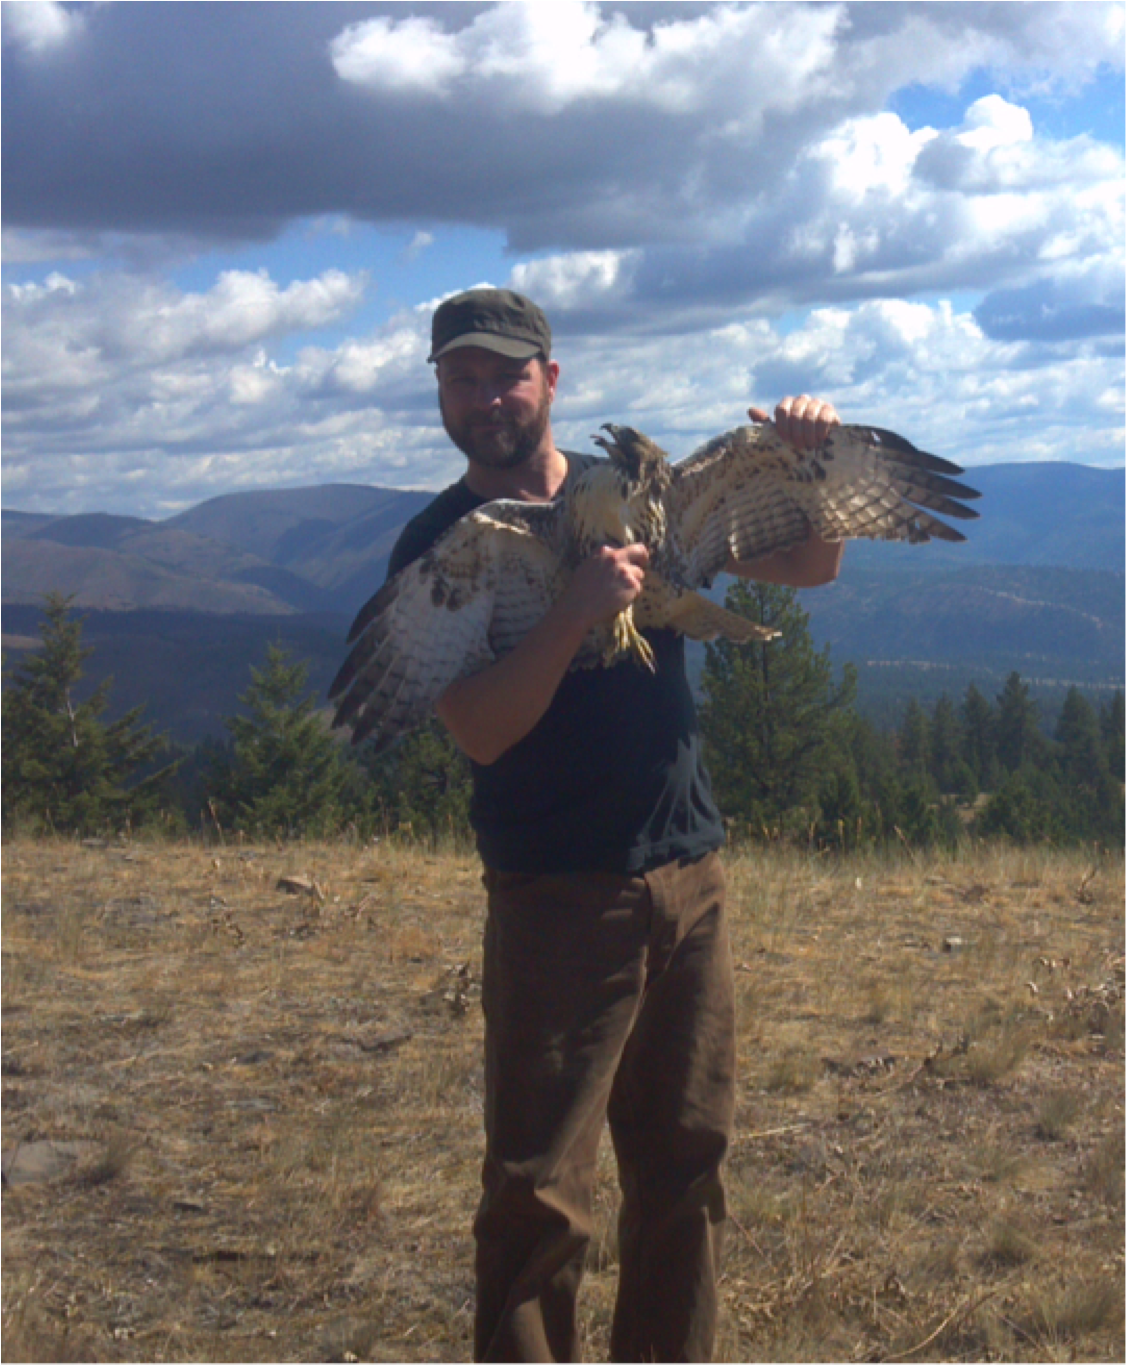 Eric holds the first raptor capture of the season: a feisty Red-tailed Hawk (RVRI photo).